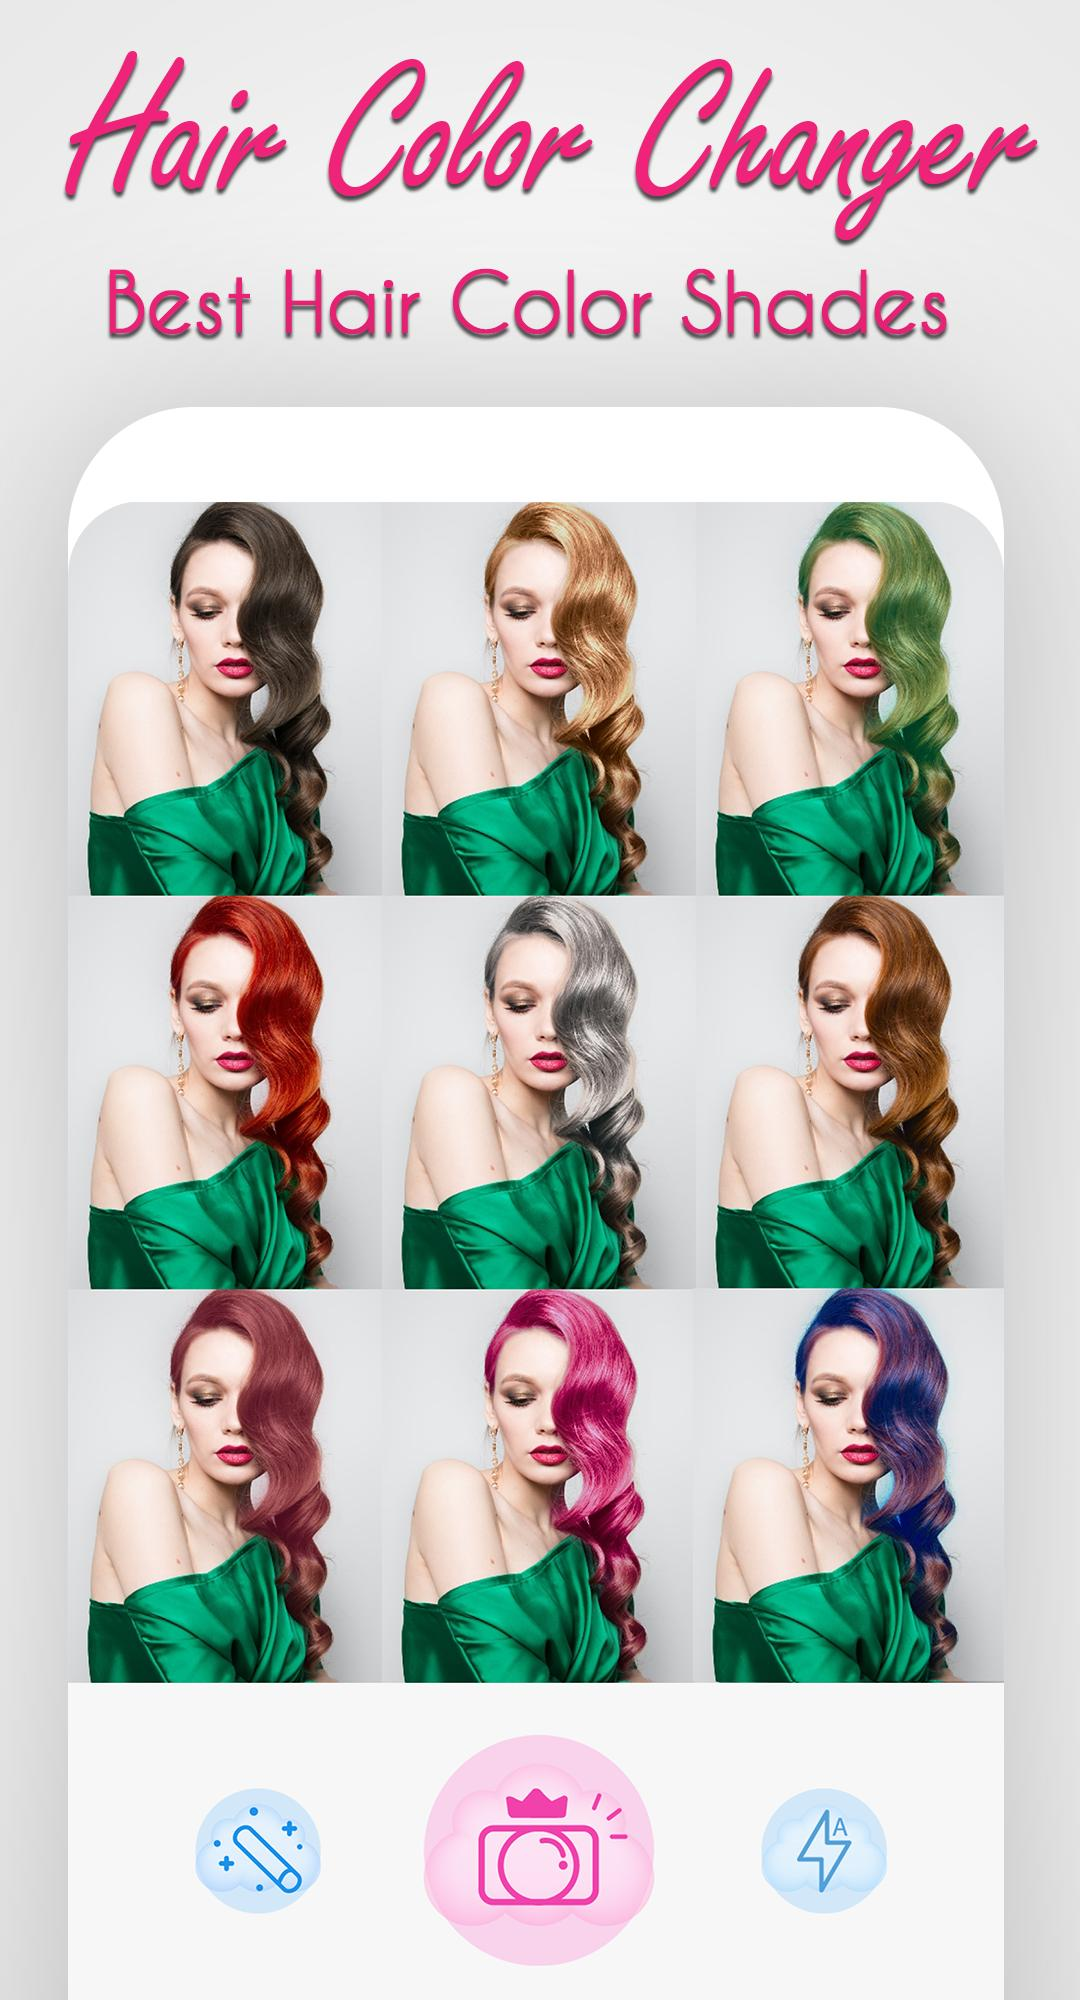 Hair Dyes Photo Editor Hair Color Changer For Android Apk Download